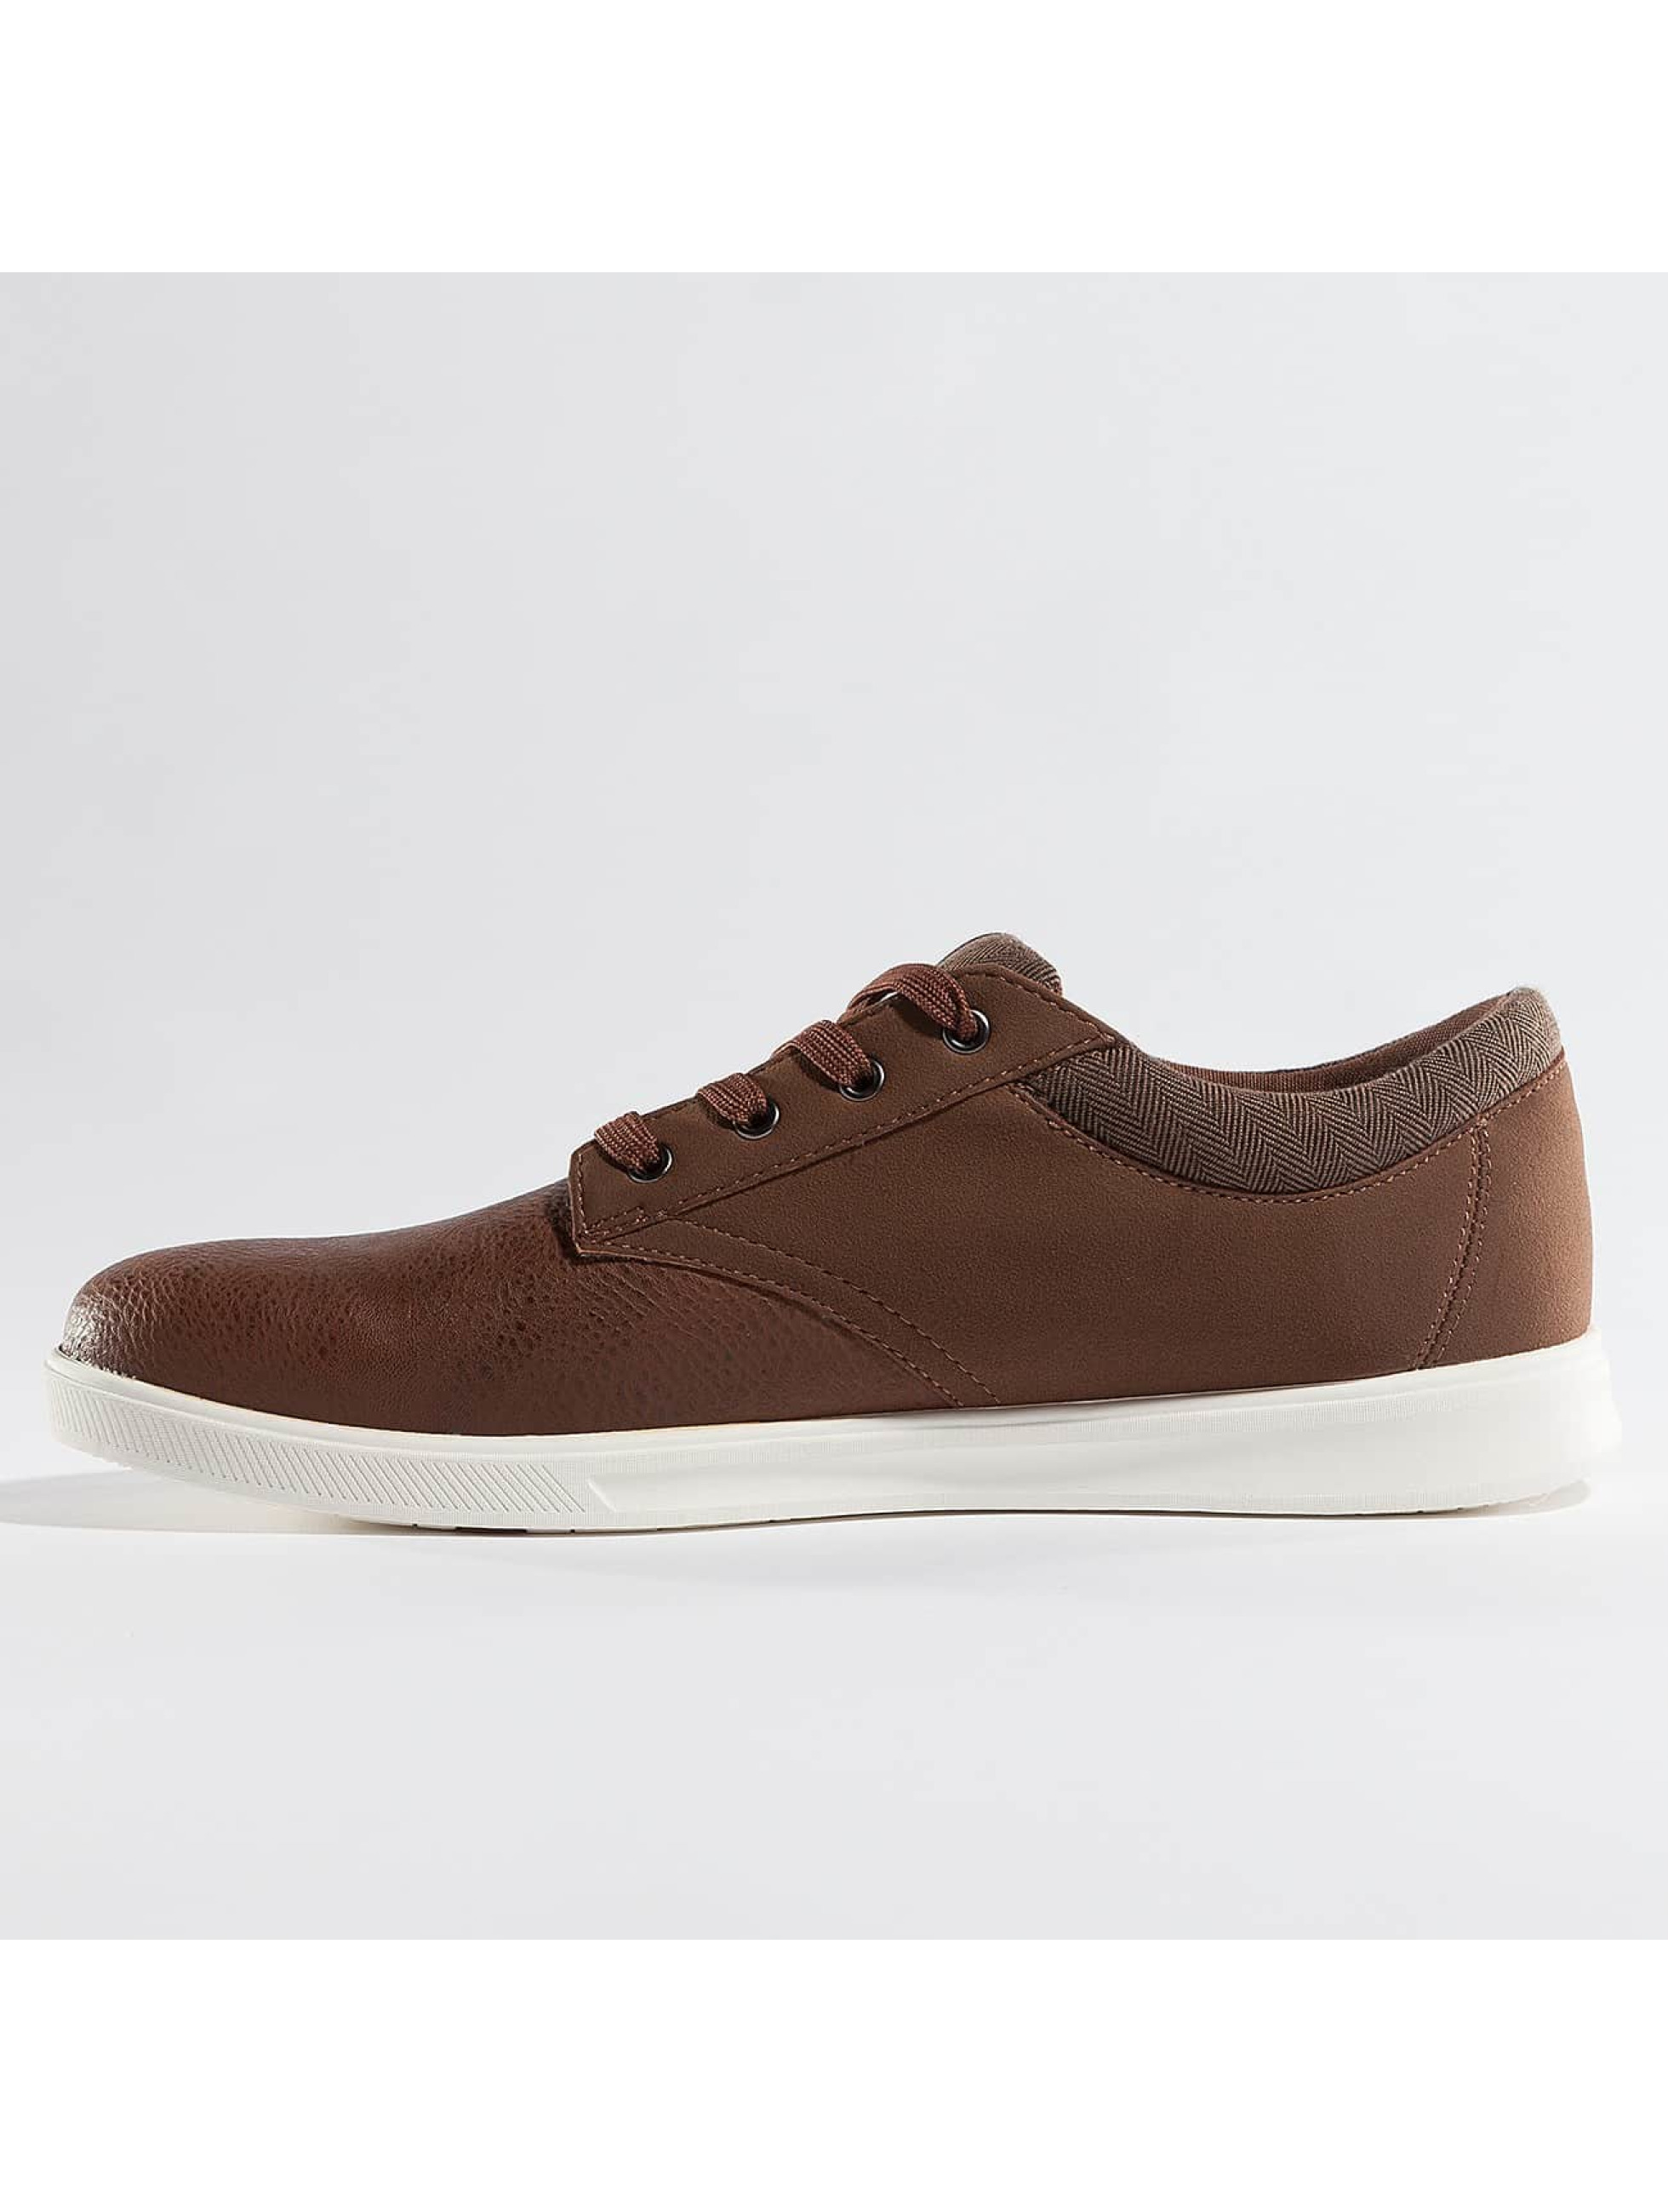 Jack & Jones Zapatillas de deporte jfwGaston marrón